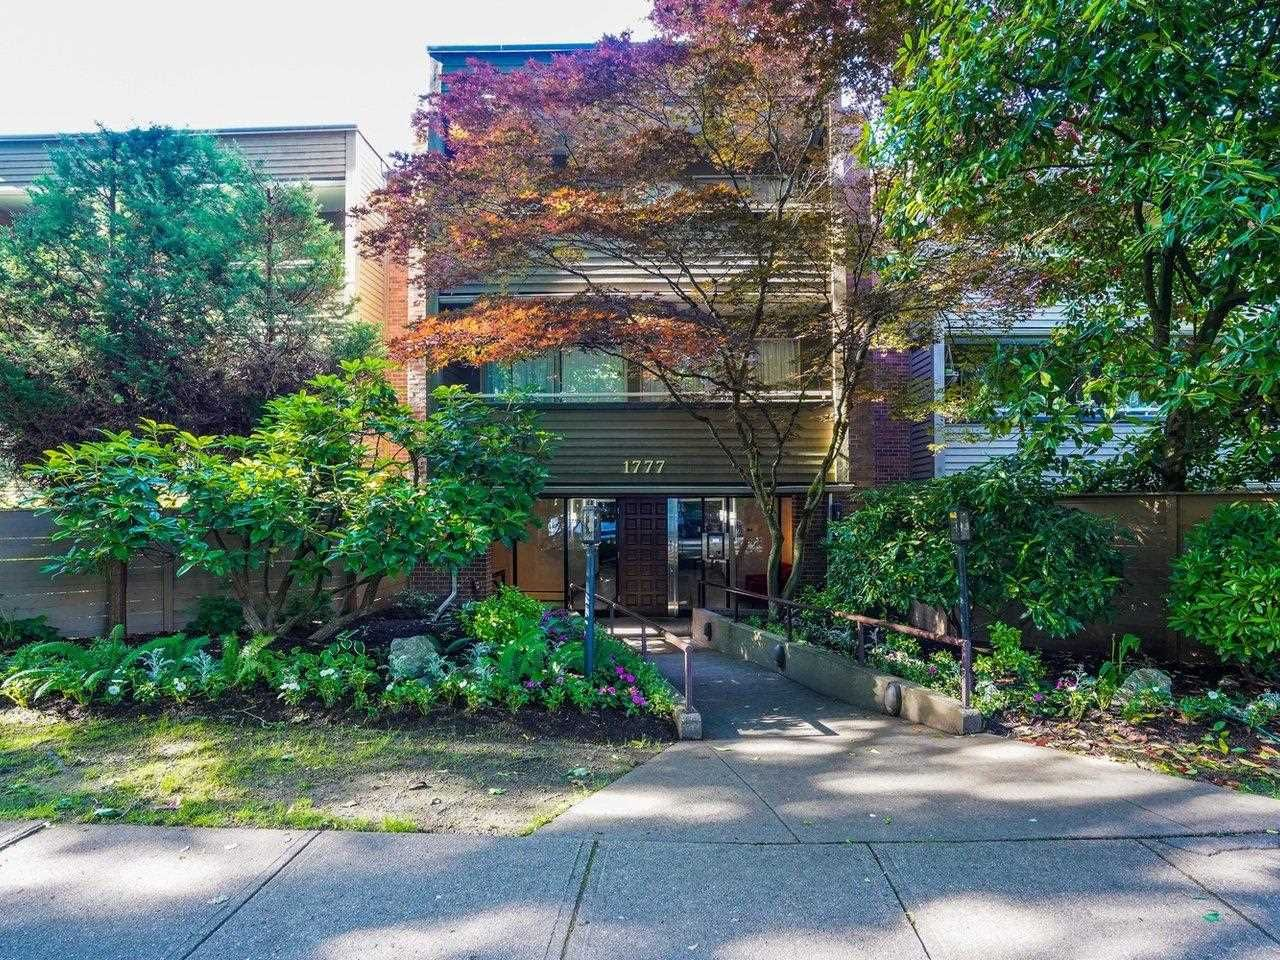 """Main Photo: 312 1777 W 13TH Avenue in Vancouver: Fairview VW Condo for sale in """"MONT CHARLES"""" (Vancouver West)  : MLS®# R2595437"""